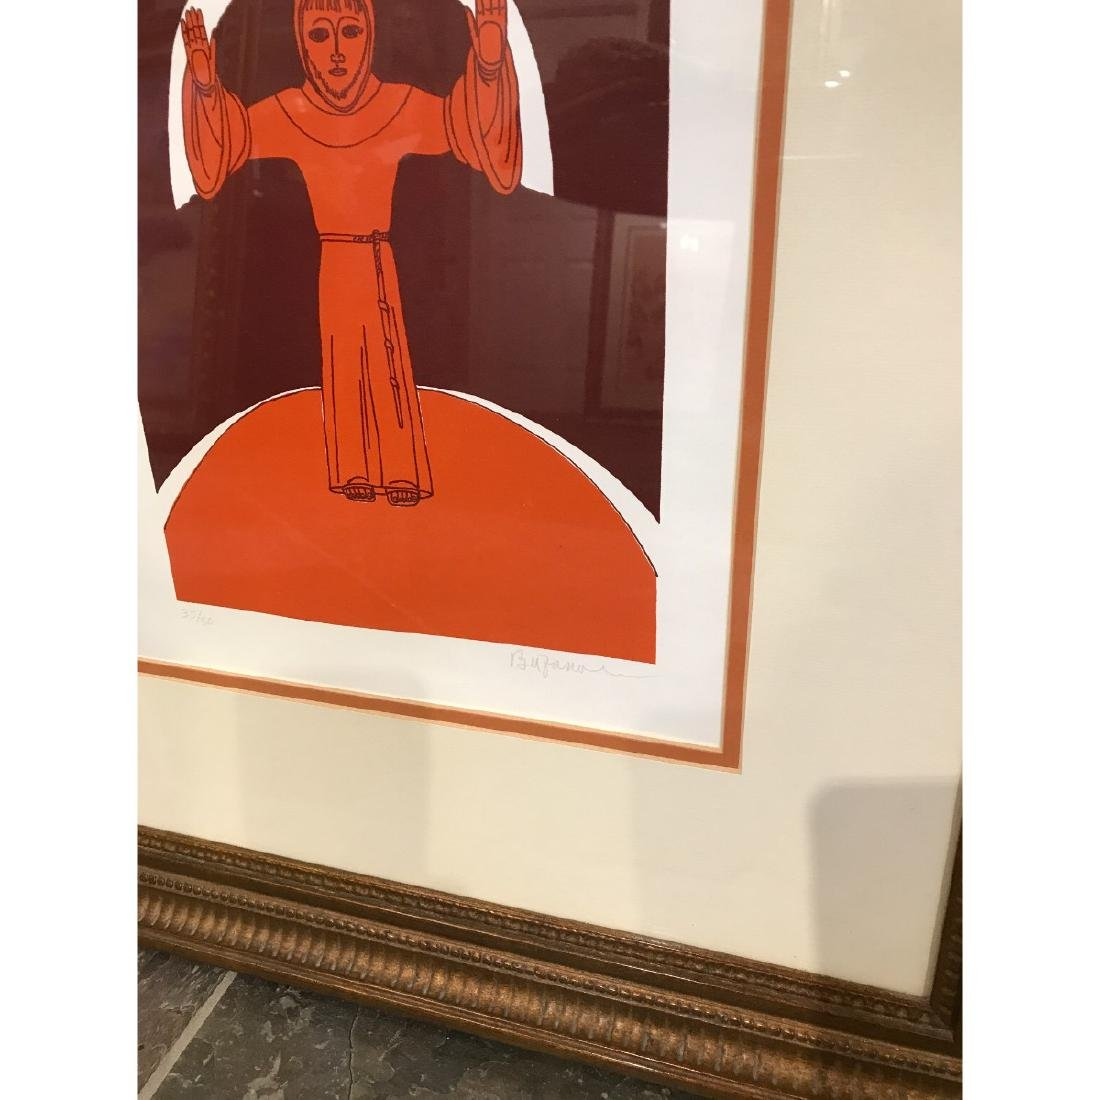 Limited Edition Print of a Monk by Bu Fano, Randolph - 7